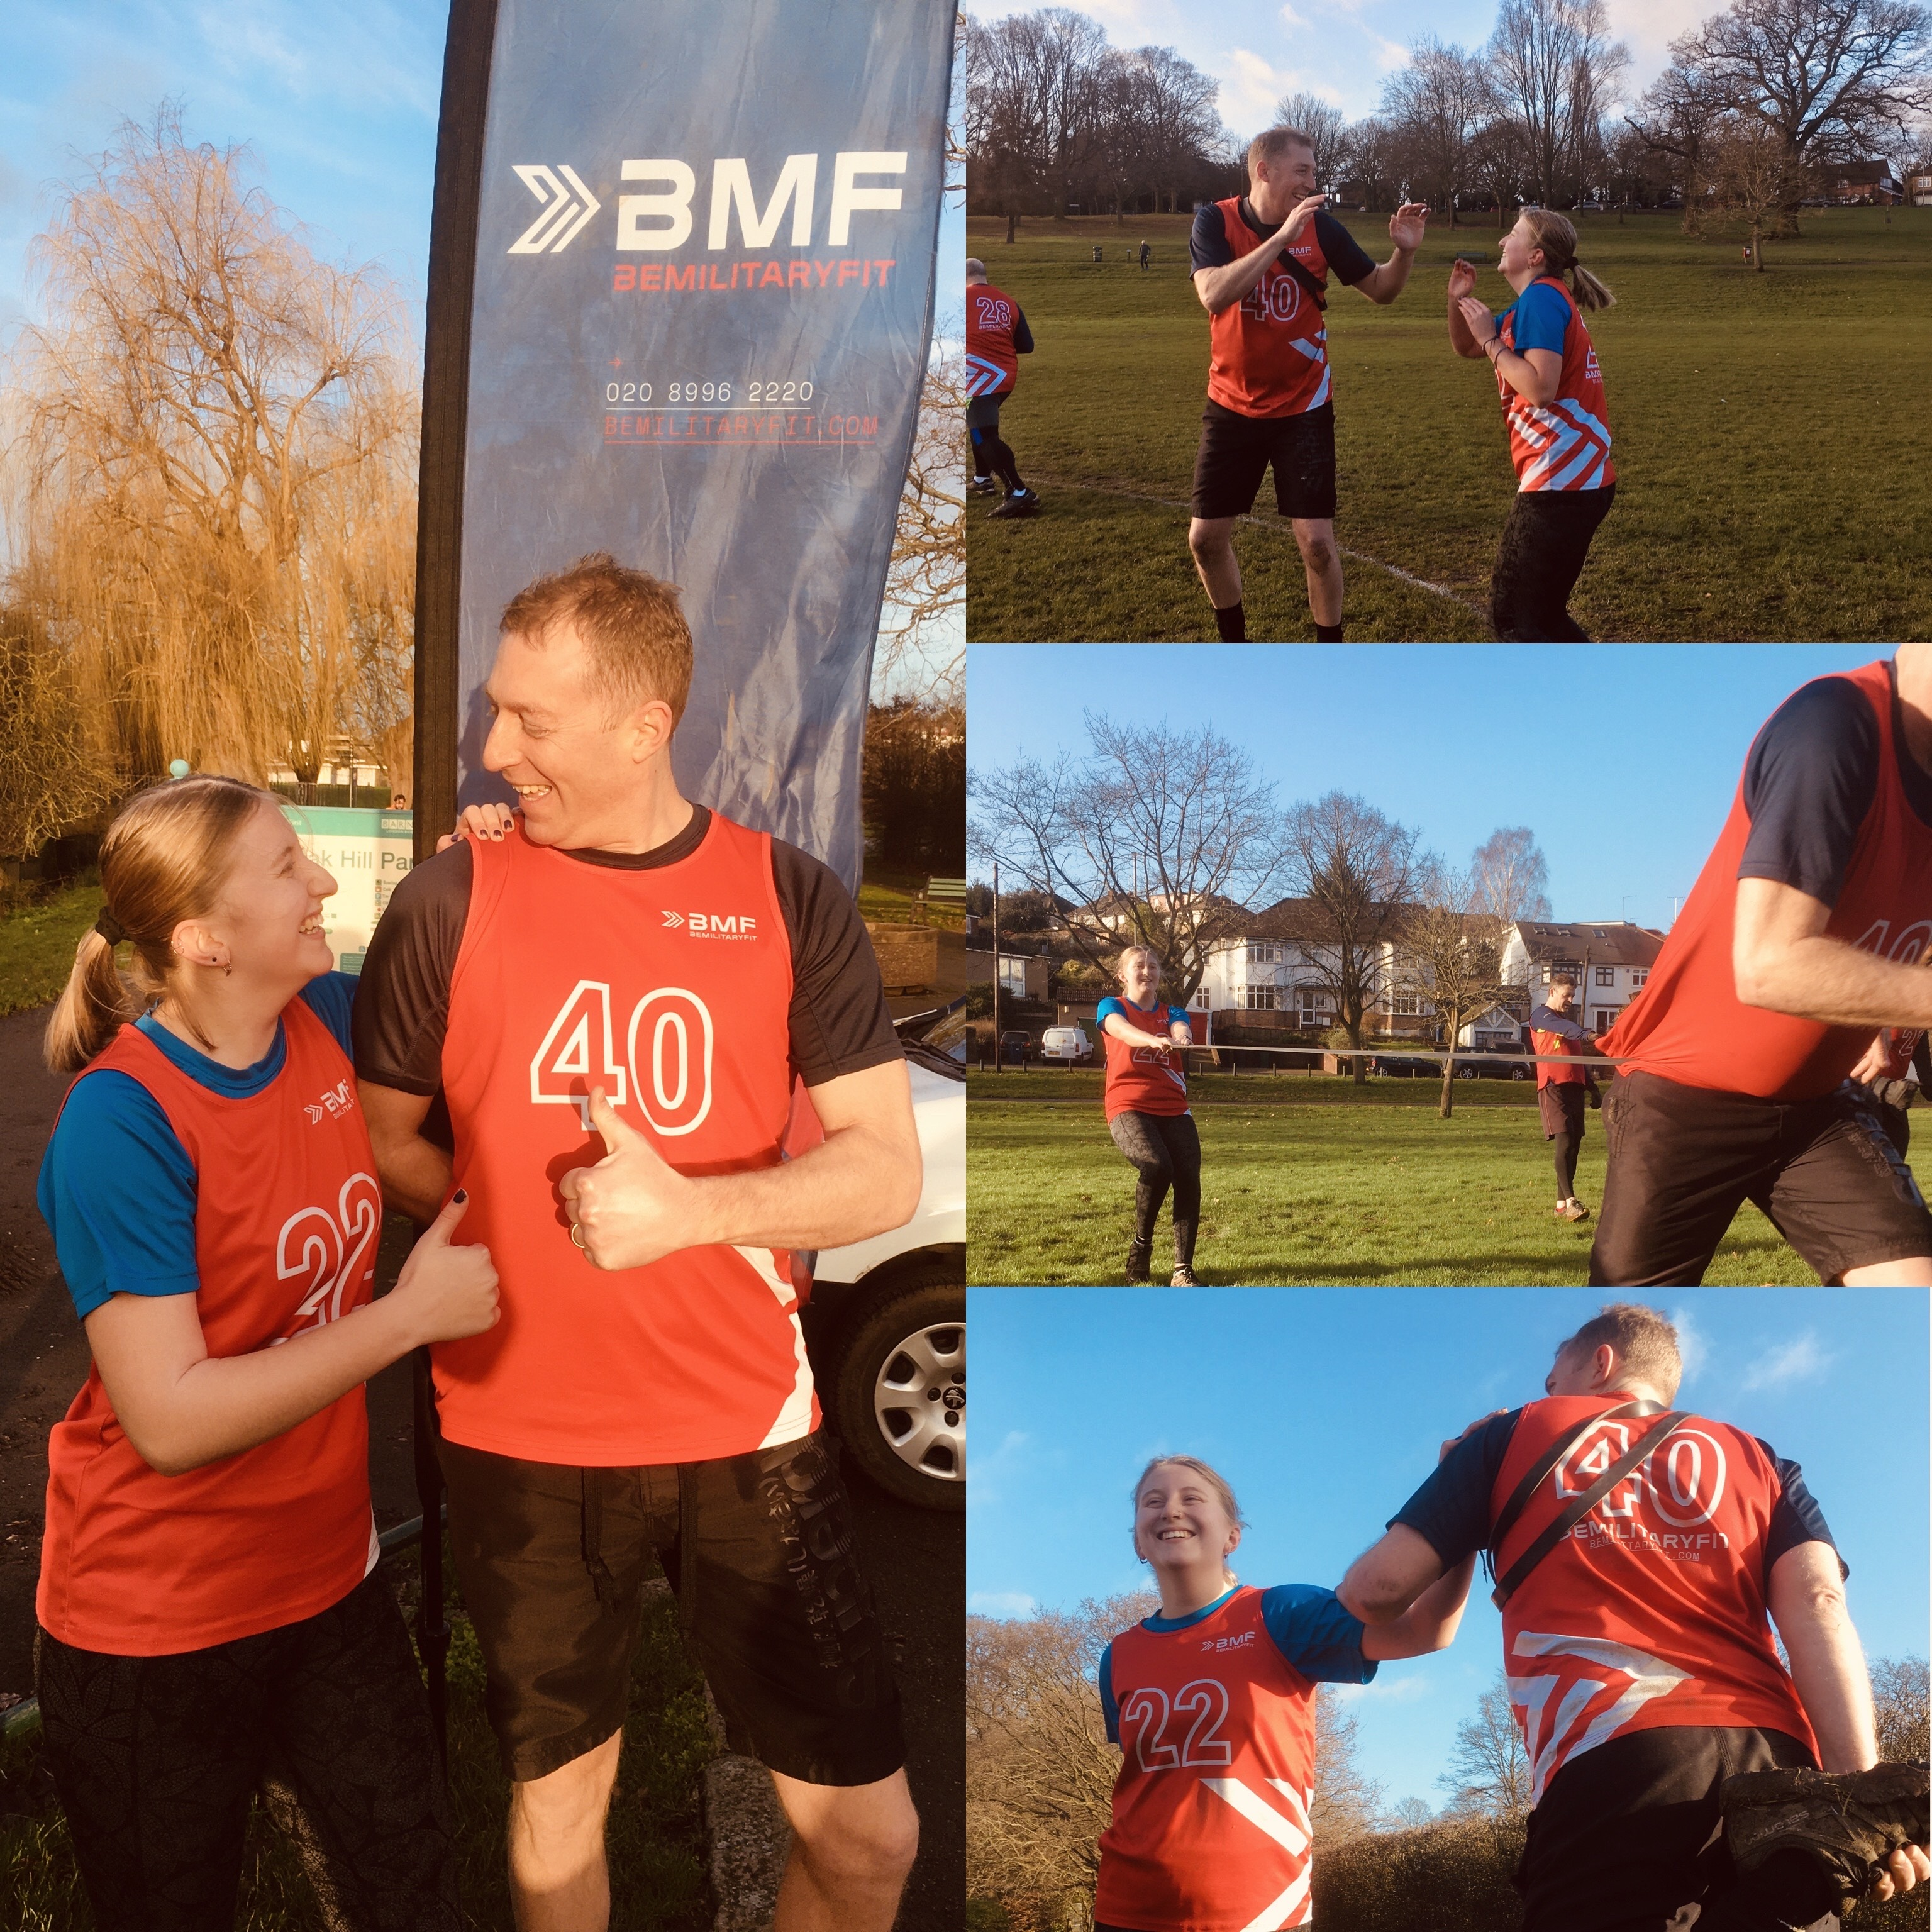 BMF - GREAT FOR FAMILY FITNESS